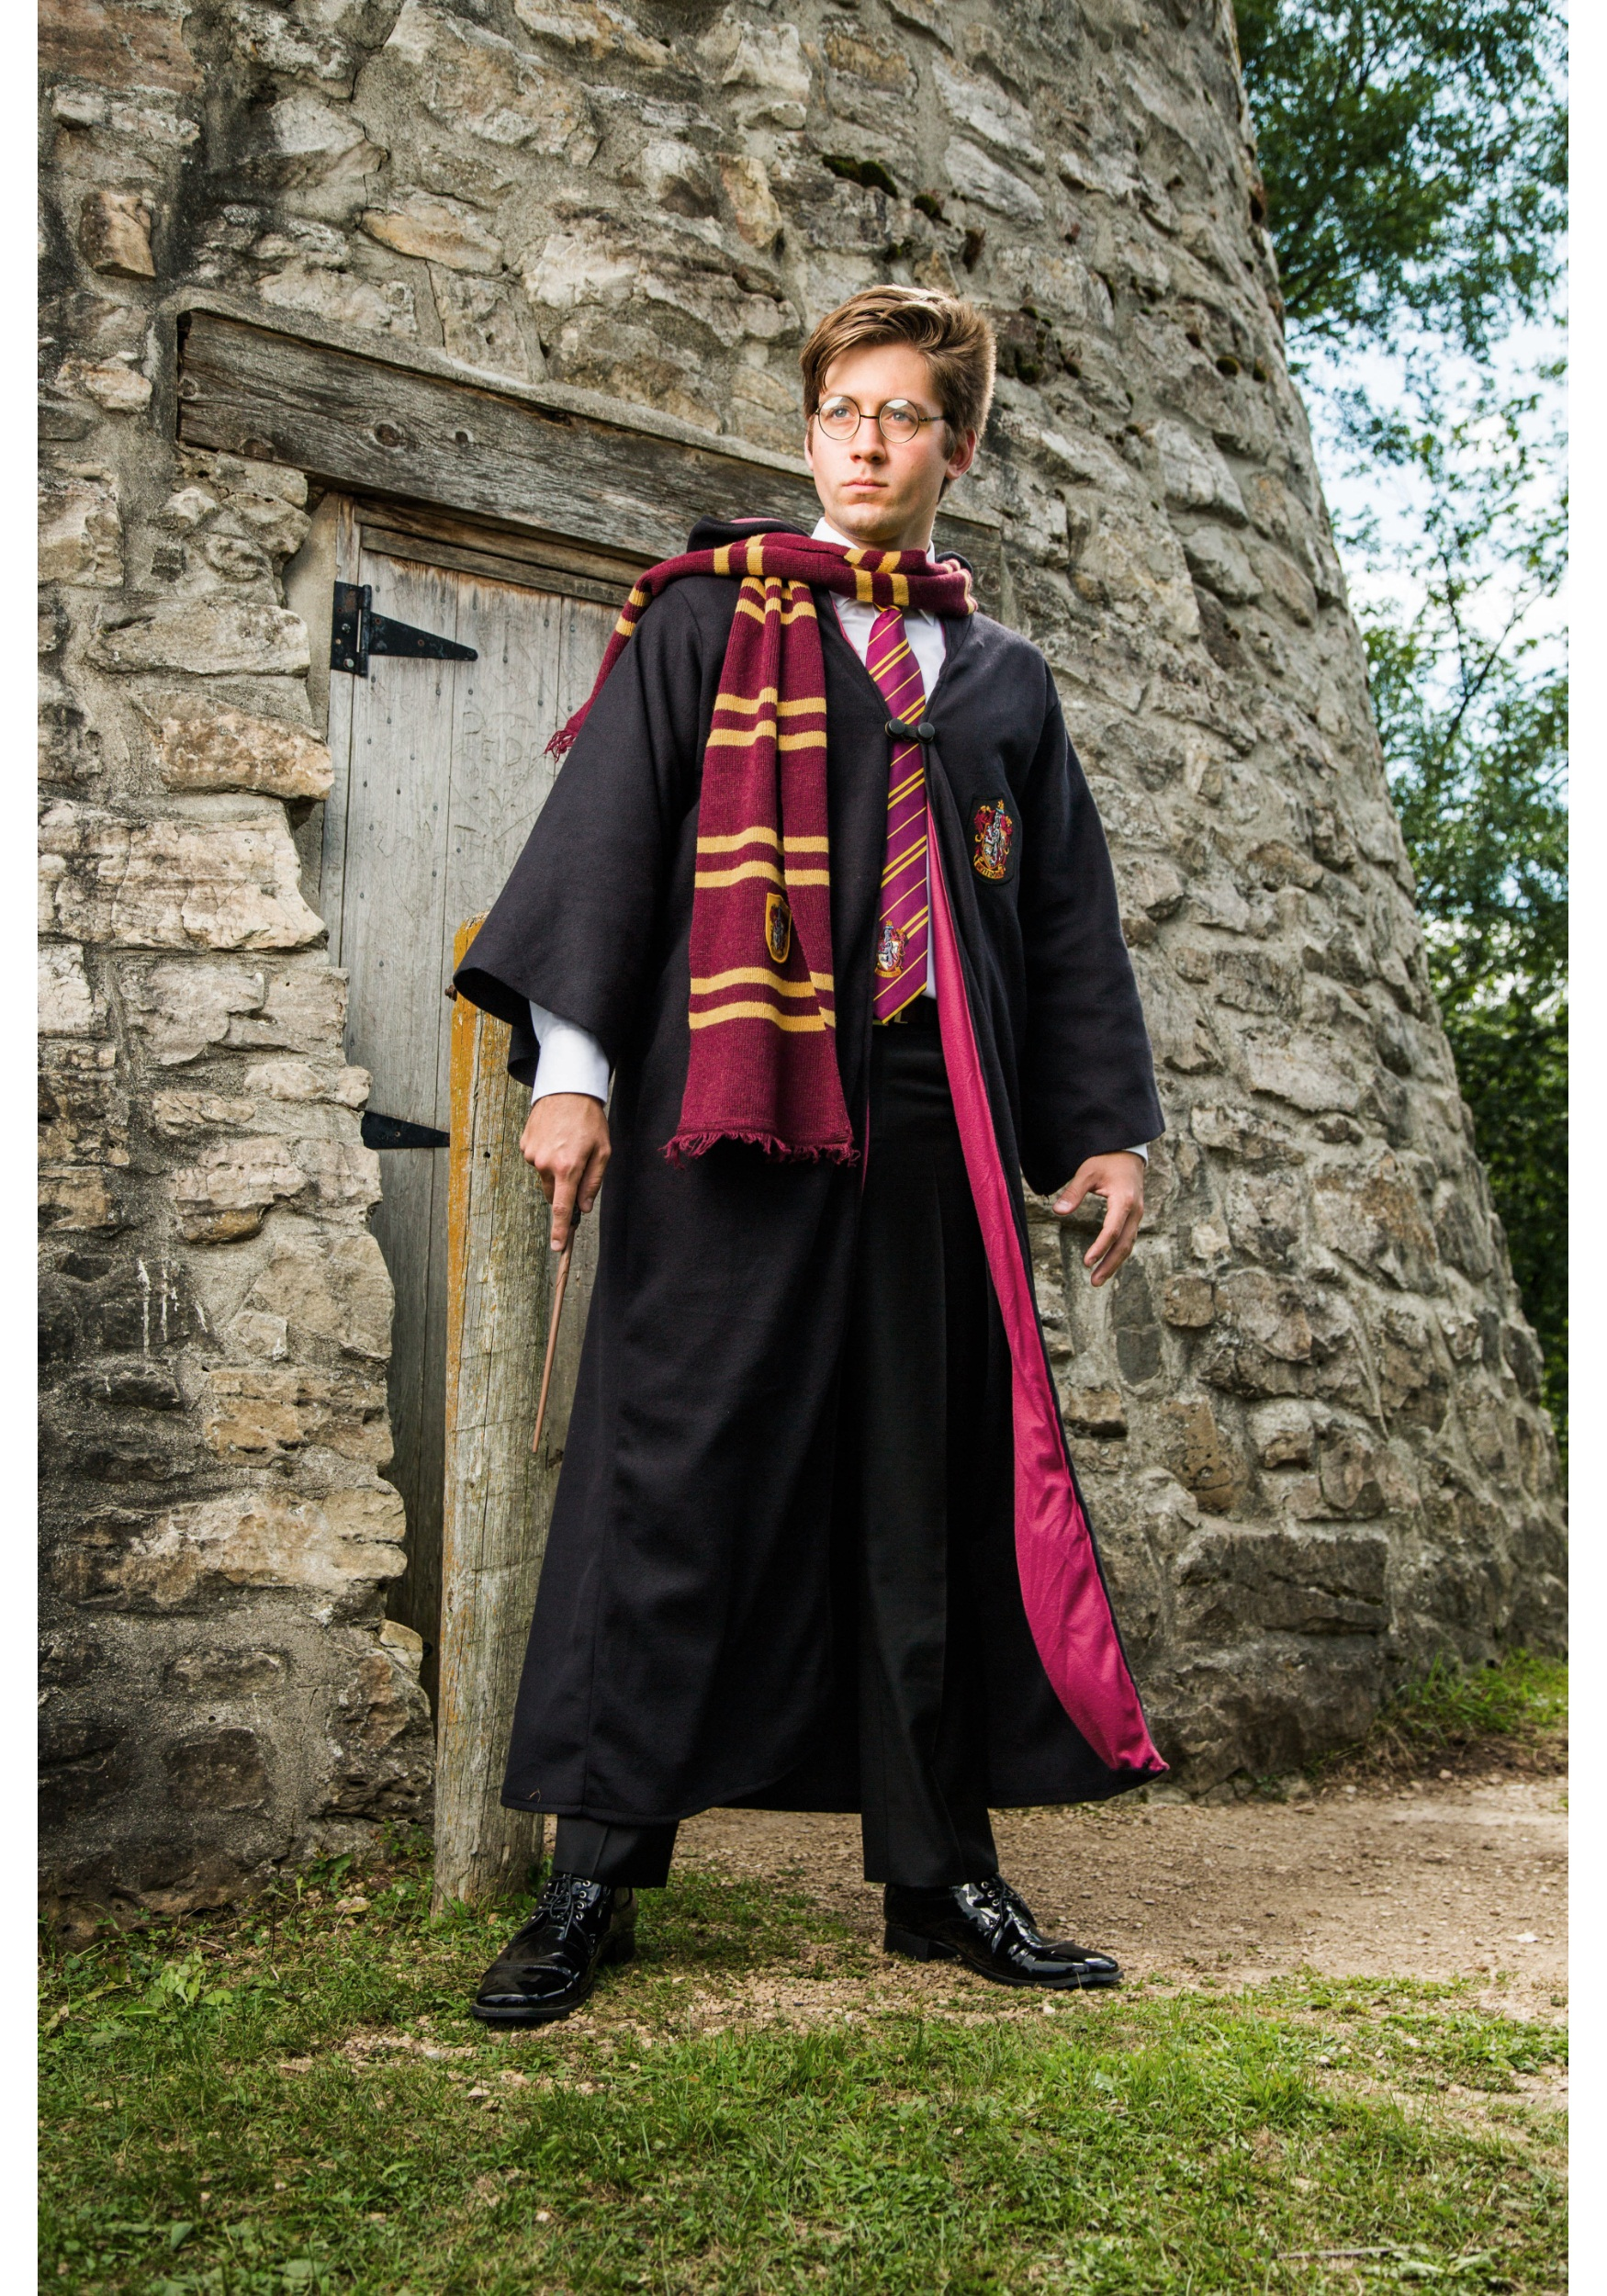 womens gryffindor costume Harry potter costume ideas harry potter costume ideas from harry, ron, and hermione to alastor moody, dobby, dumbledore and lord voldemort, it it's a magical time you're looking for, we've got you covered whether you're suiting up for a halloween quidditch match or trying to find the perfect wizard outfit for a.